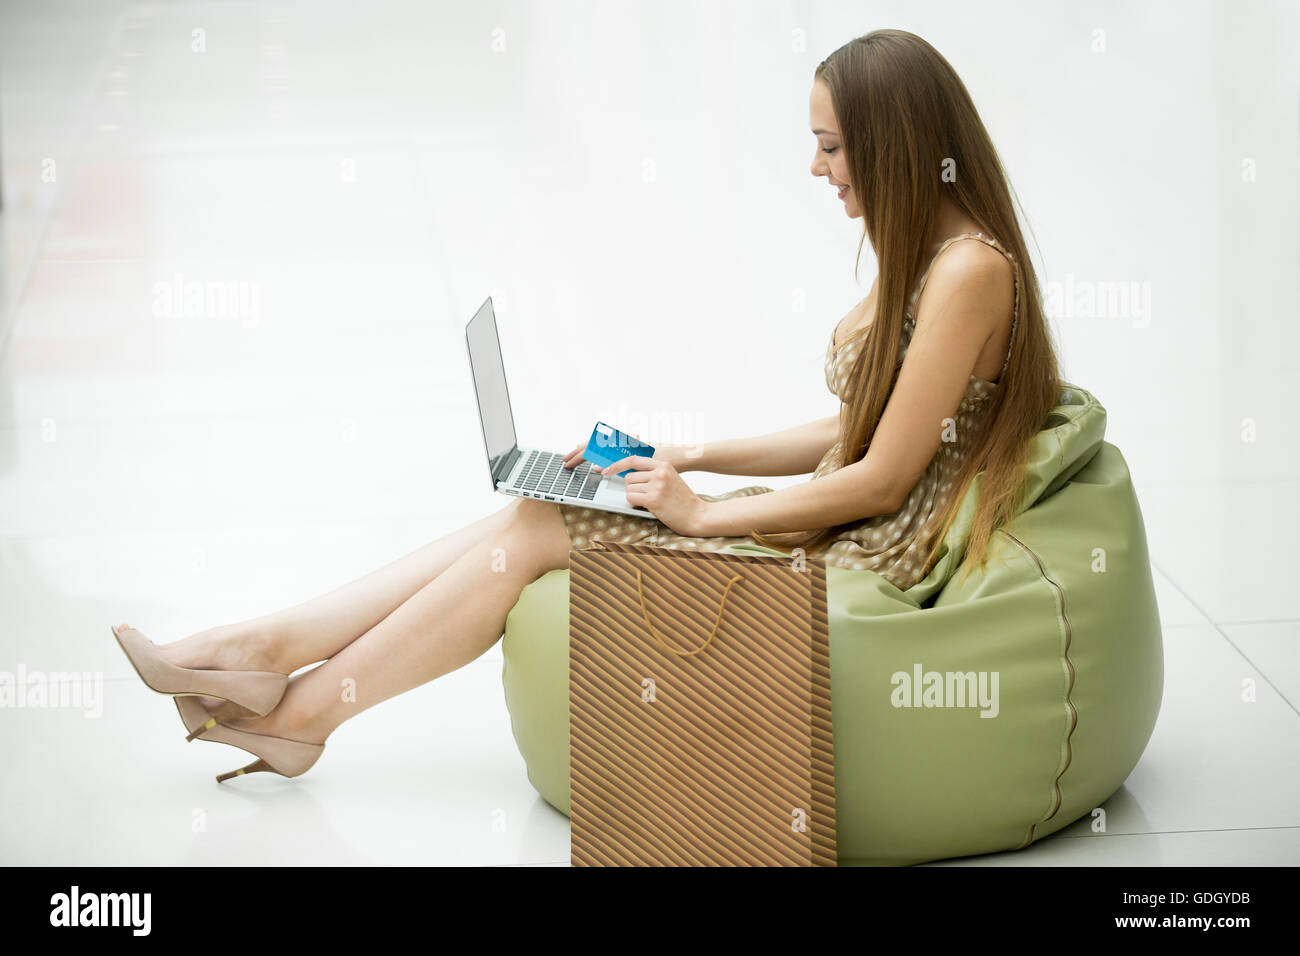 Full-length side view portrait of young smiling pretty woman sitting in shopping centre on bean bag chair with laptop - Stock Image